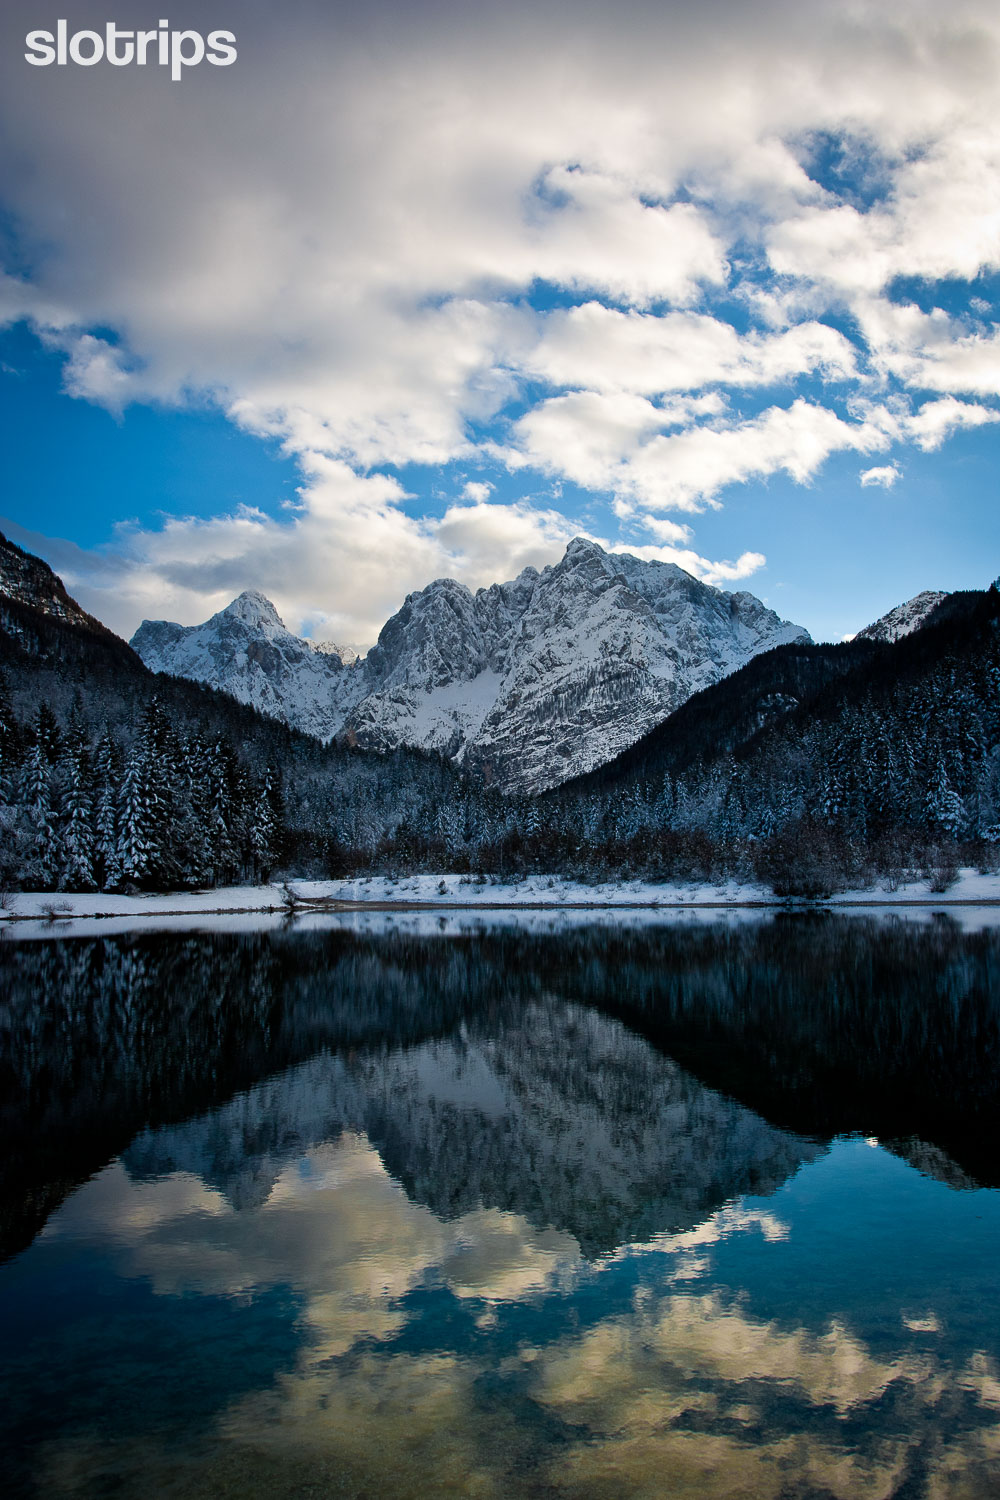 Winter hiking trip at Lake Jasna near Kranjska Gora with Julian Alps reflection.